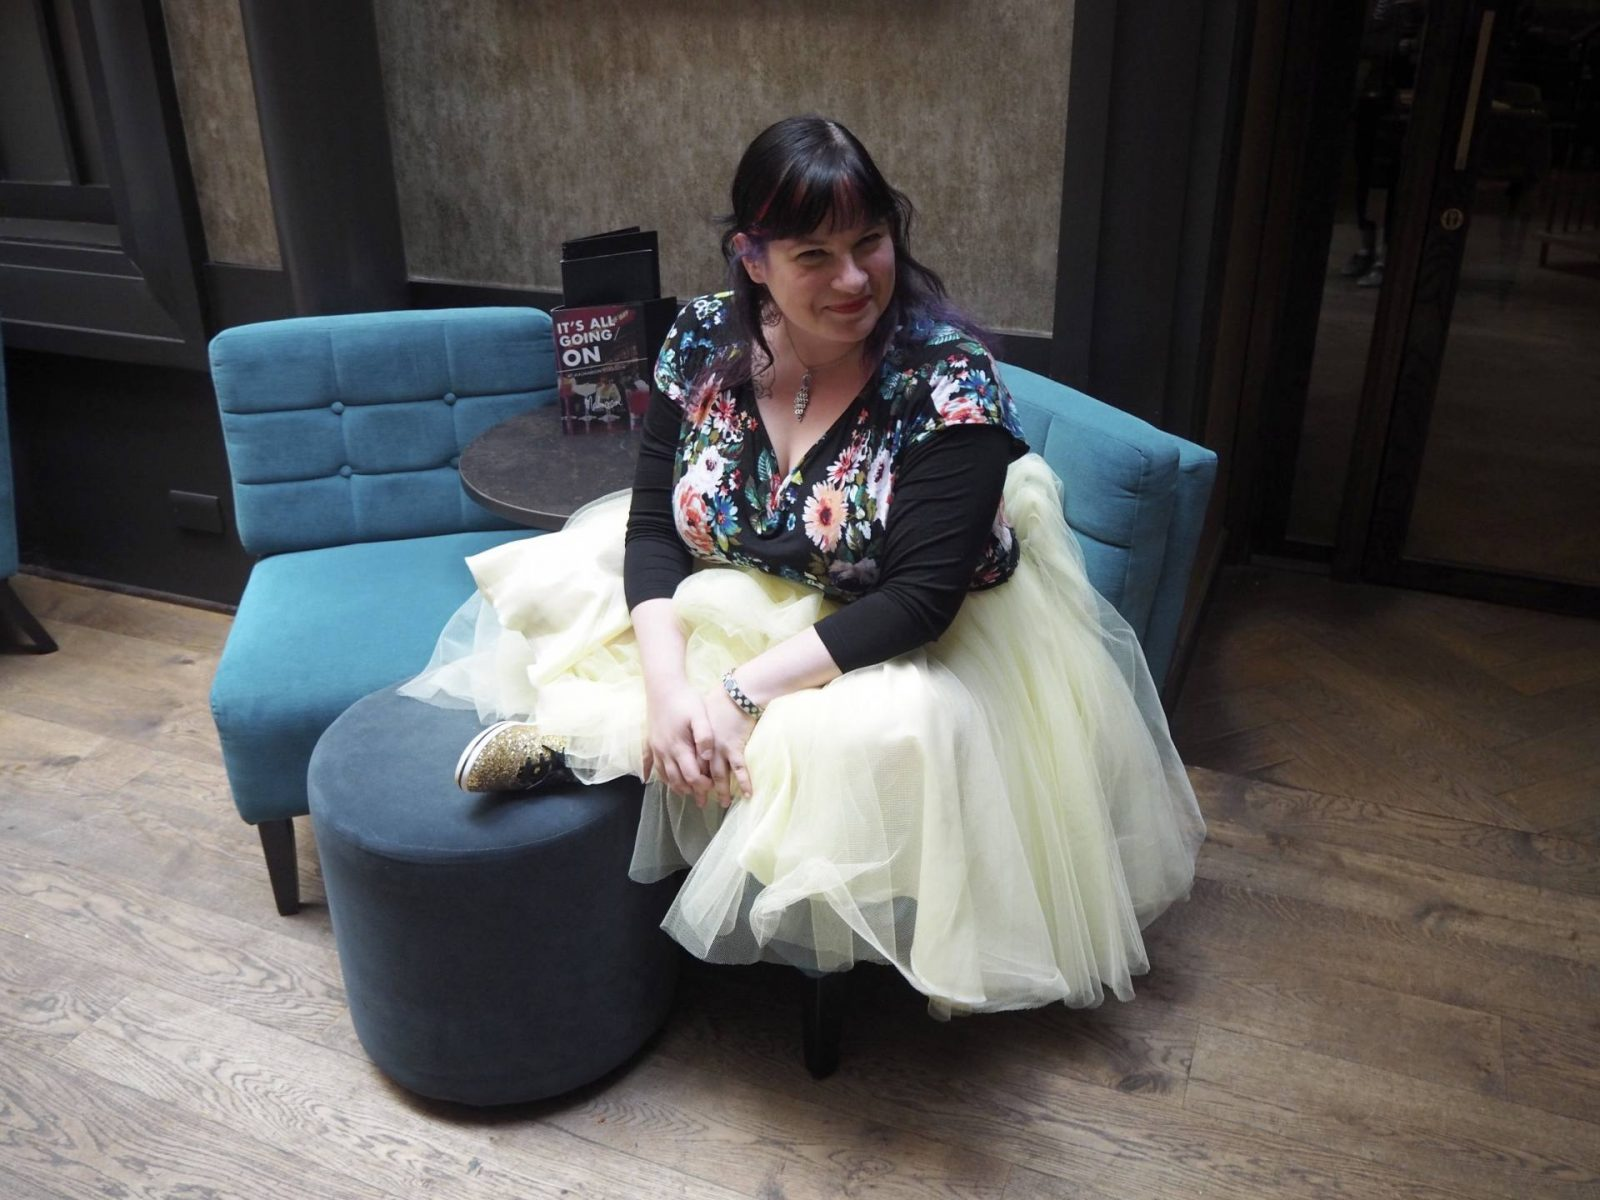 Wingz fashion sleeves review, plus afternoon tea at Malmaison, Glasgow